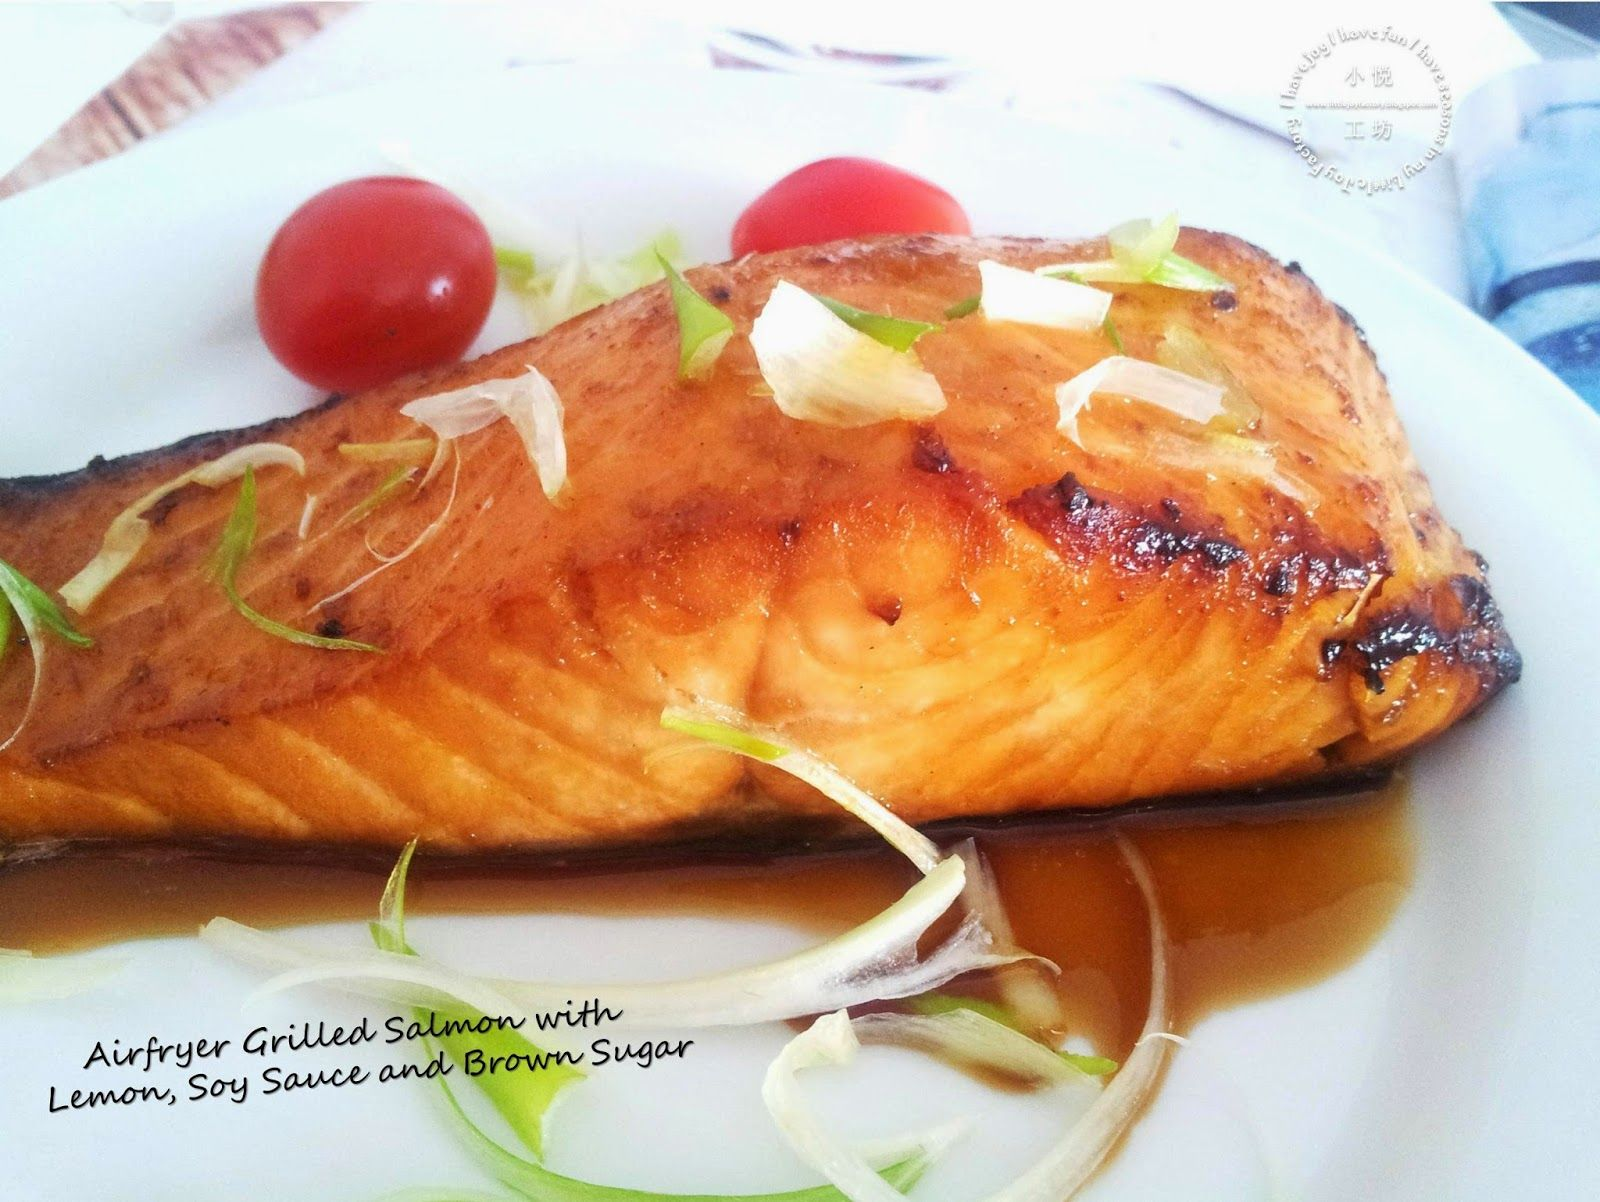 Grilled salmon with lemon soy sauce and brown sugar for Airfryer recipes fish